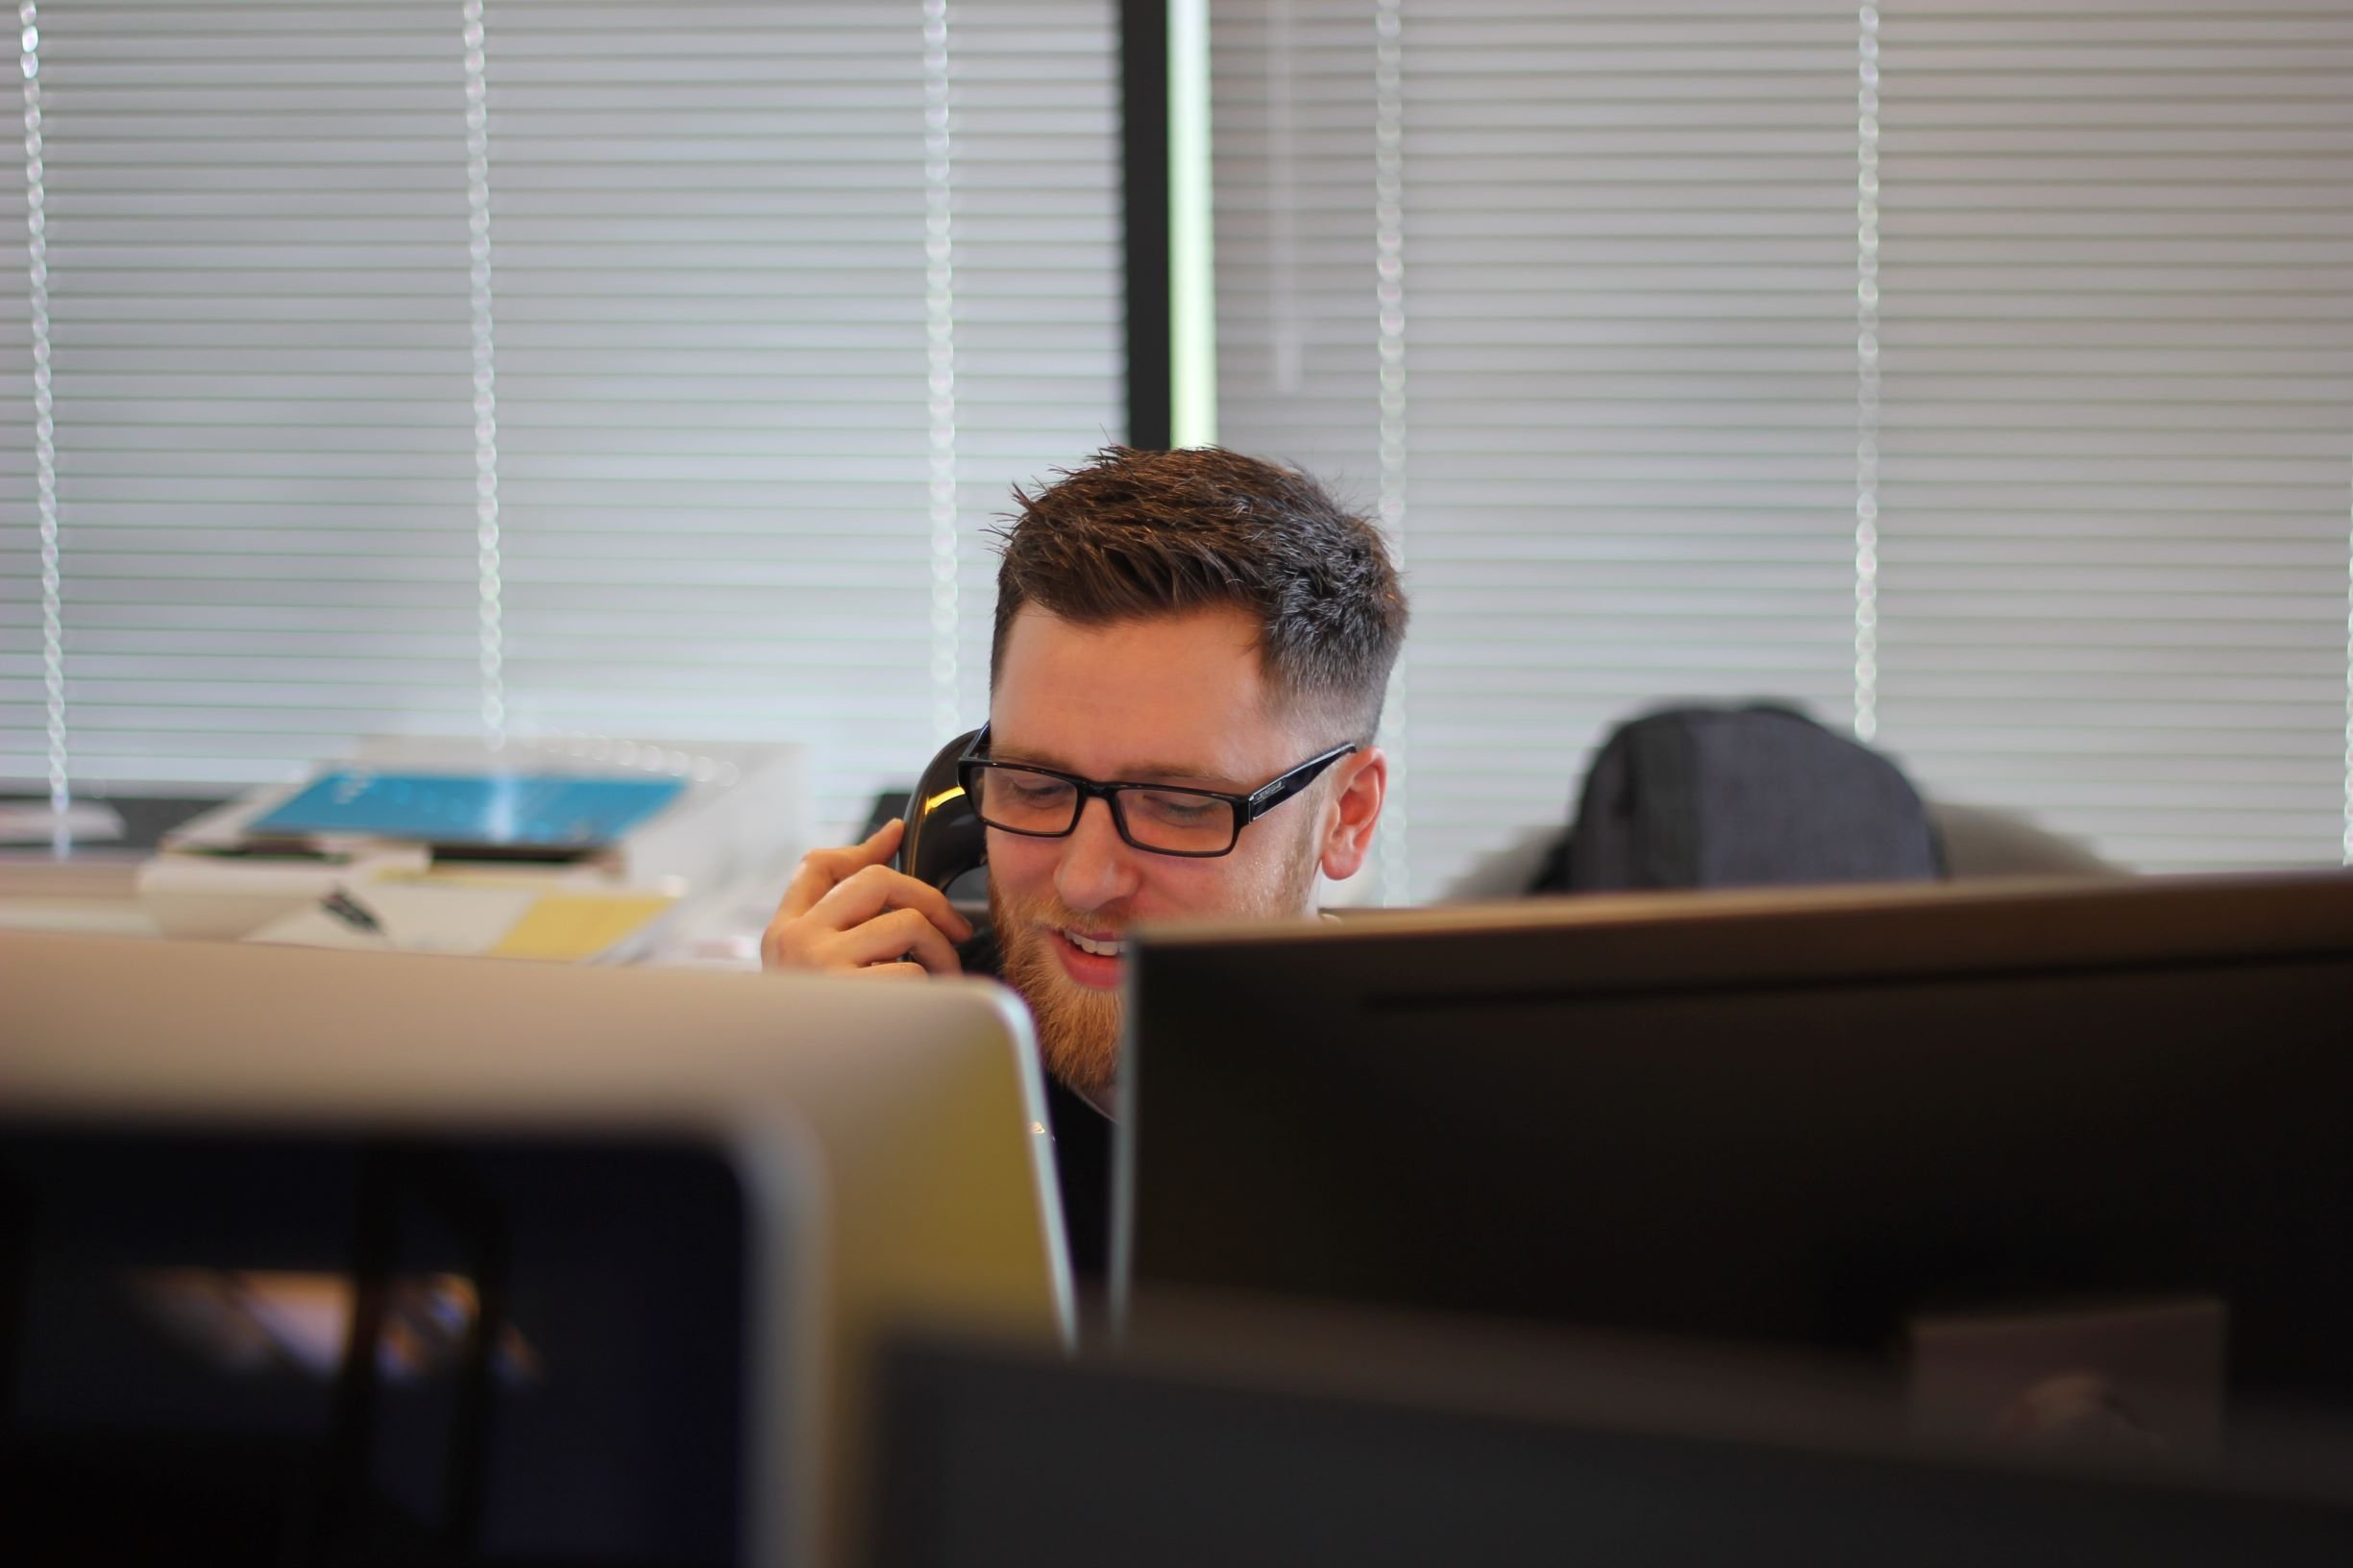 Man answers a question on the phone in front of computer monitors